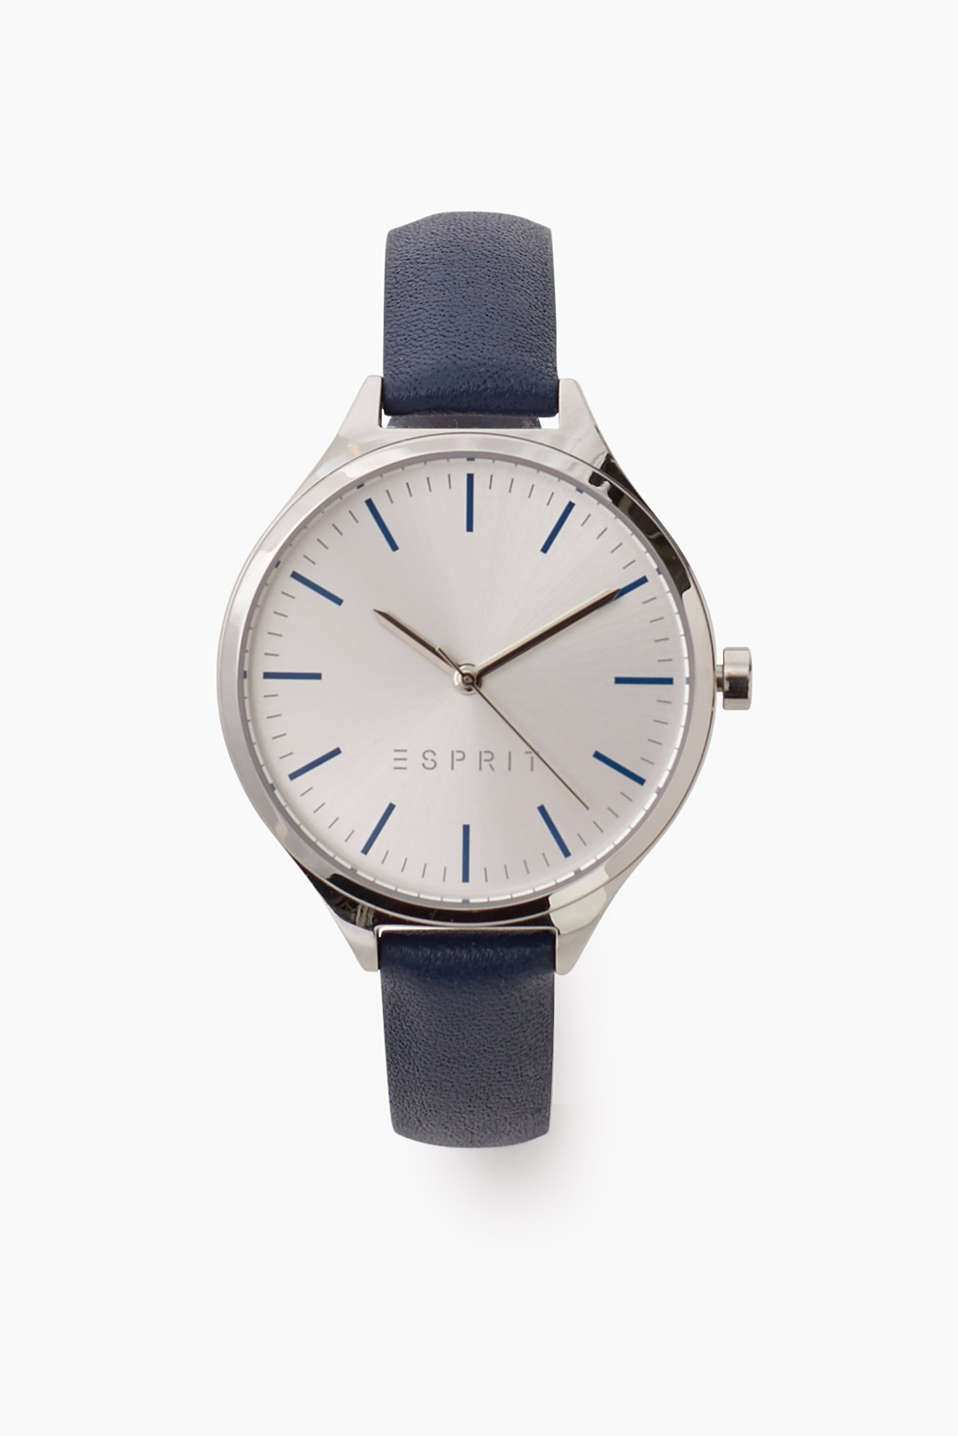 Esprit - Stainless steel watch + blue leather strap